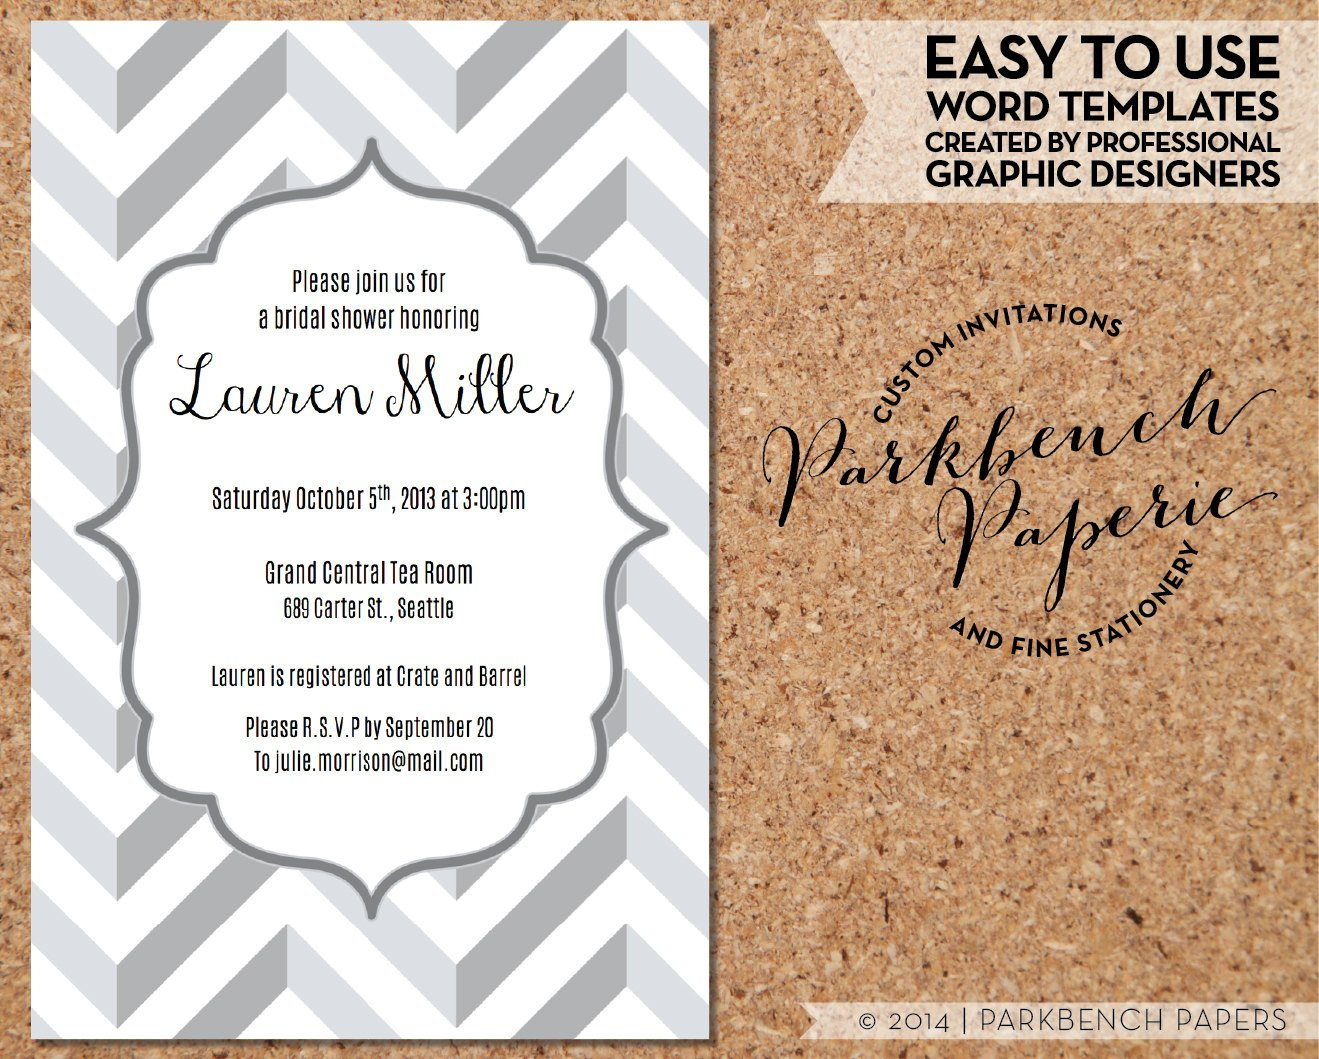 Wedding Shower Invitation Templates Bridal Shower Invitation Gray Chevron Diy Editable Word